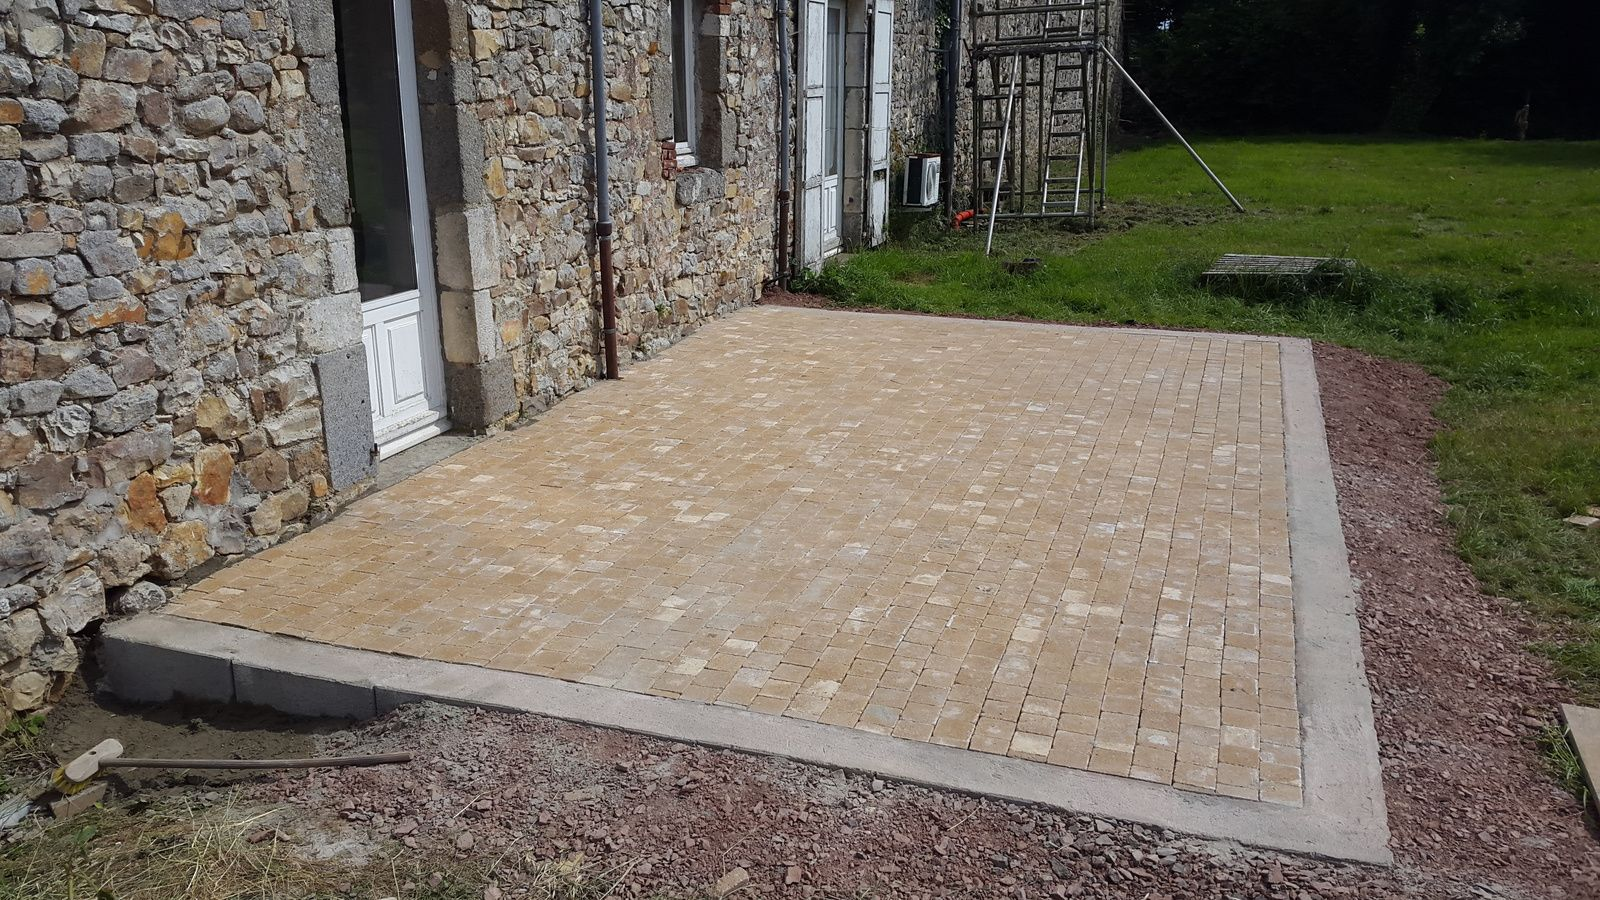 Dalle Terrasse Sur Sable Creation Terrasse En Terrasse Ronde Paves Beton Sable Emouvant